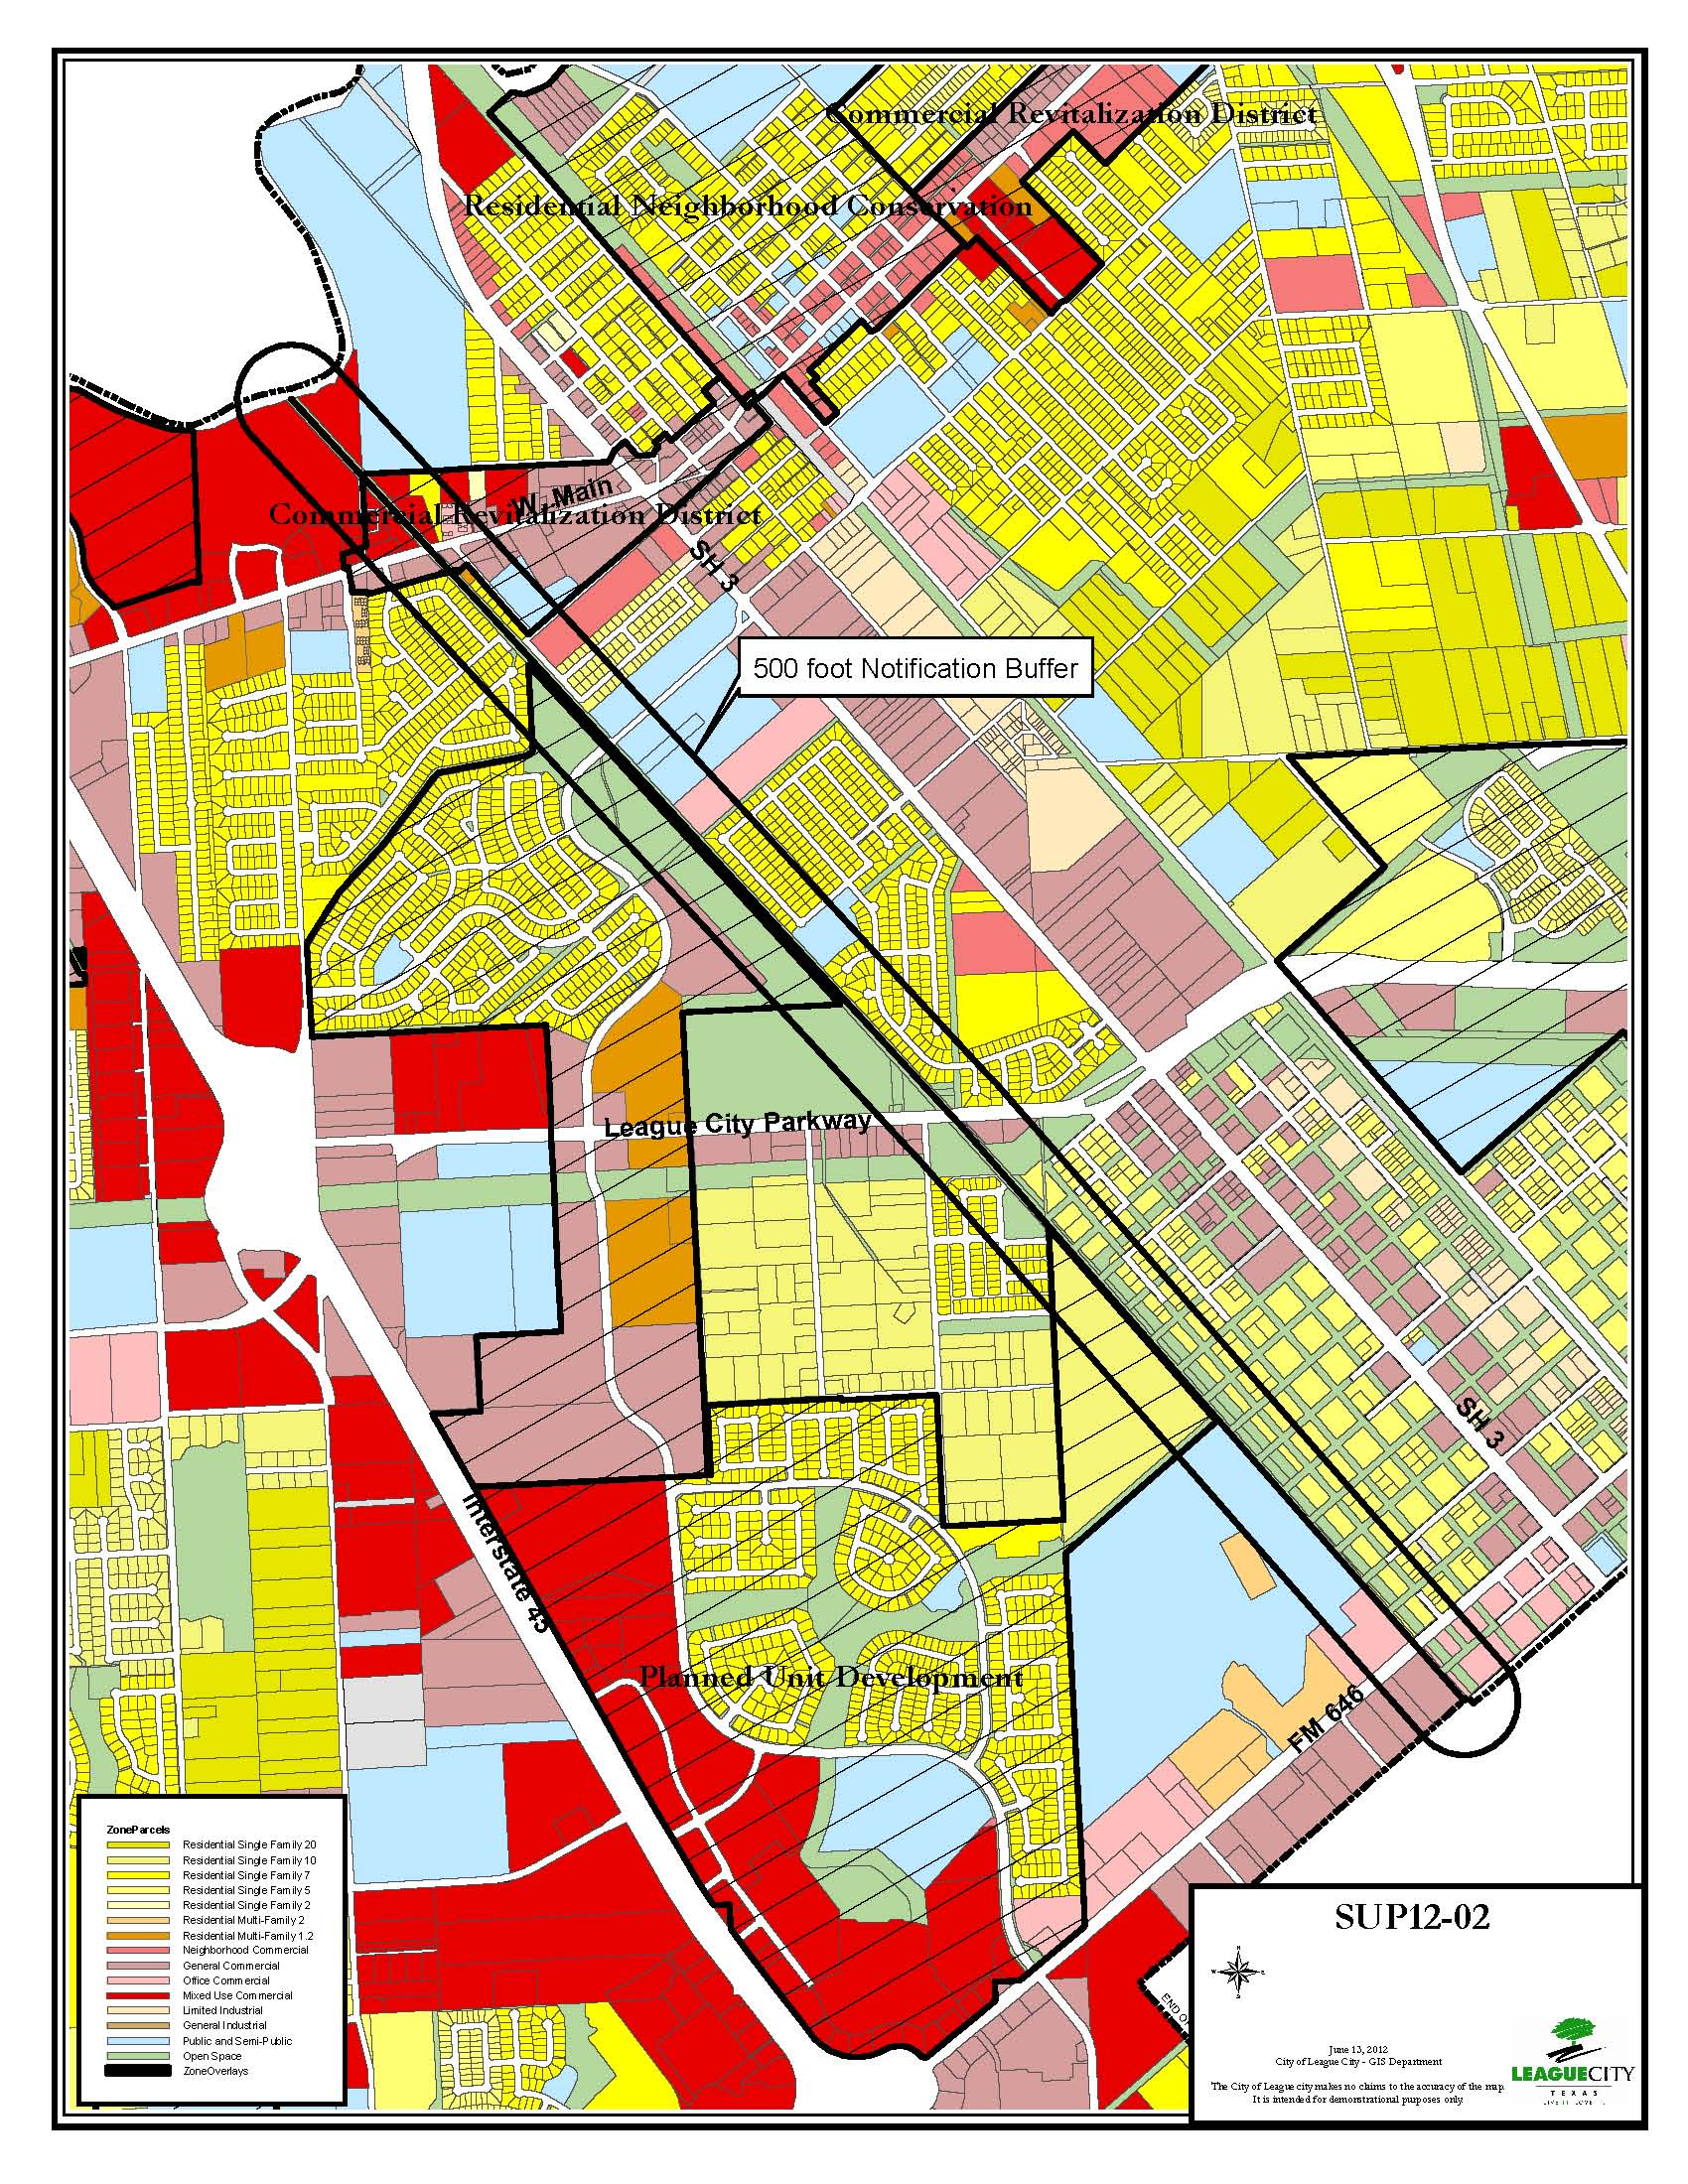 SUP12-02 (Genesis Pipeline) zoning map